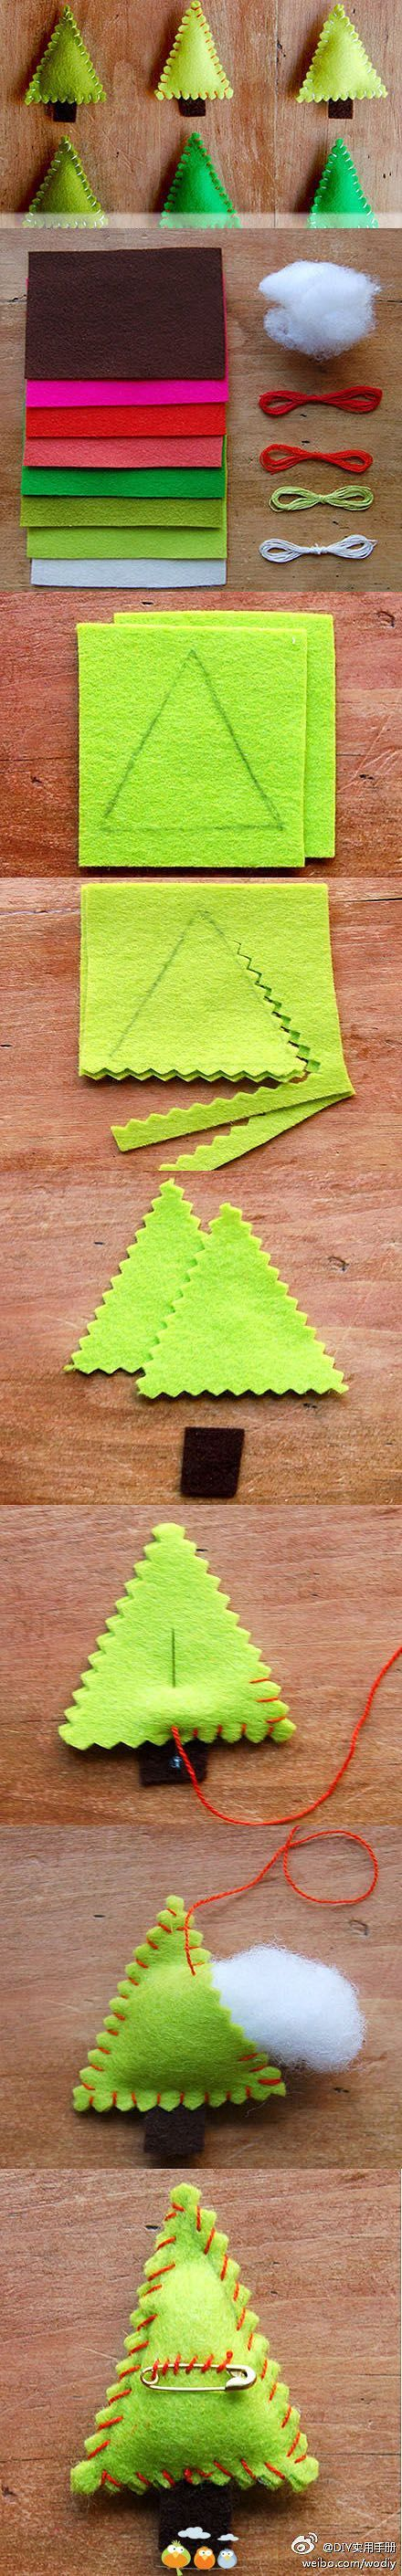 Felt Christmas Trees-pinking sheer cuts to give felt that extra fluffy look! :o)